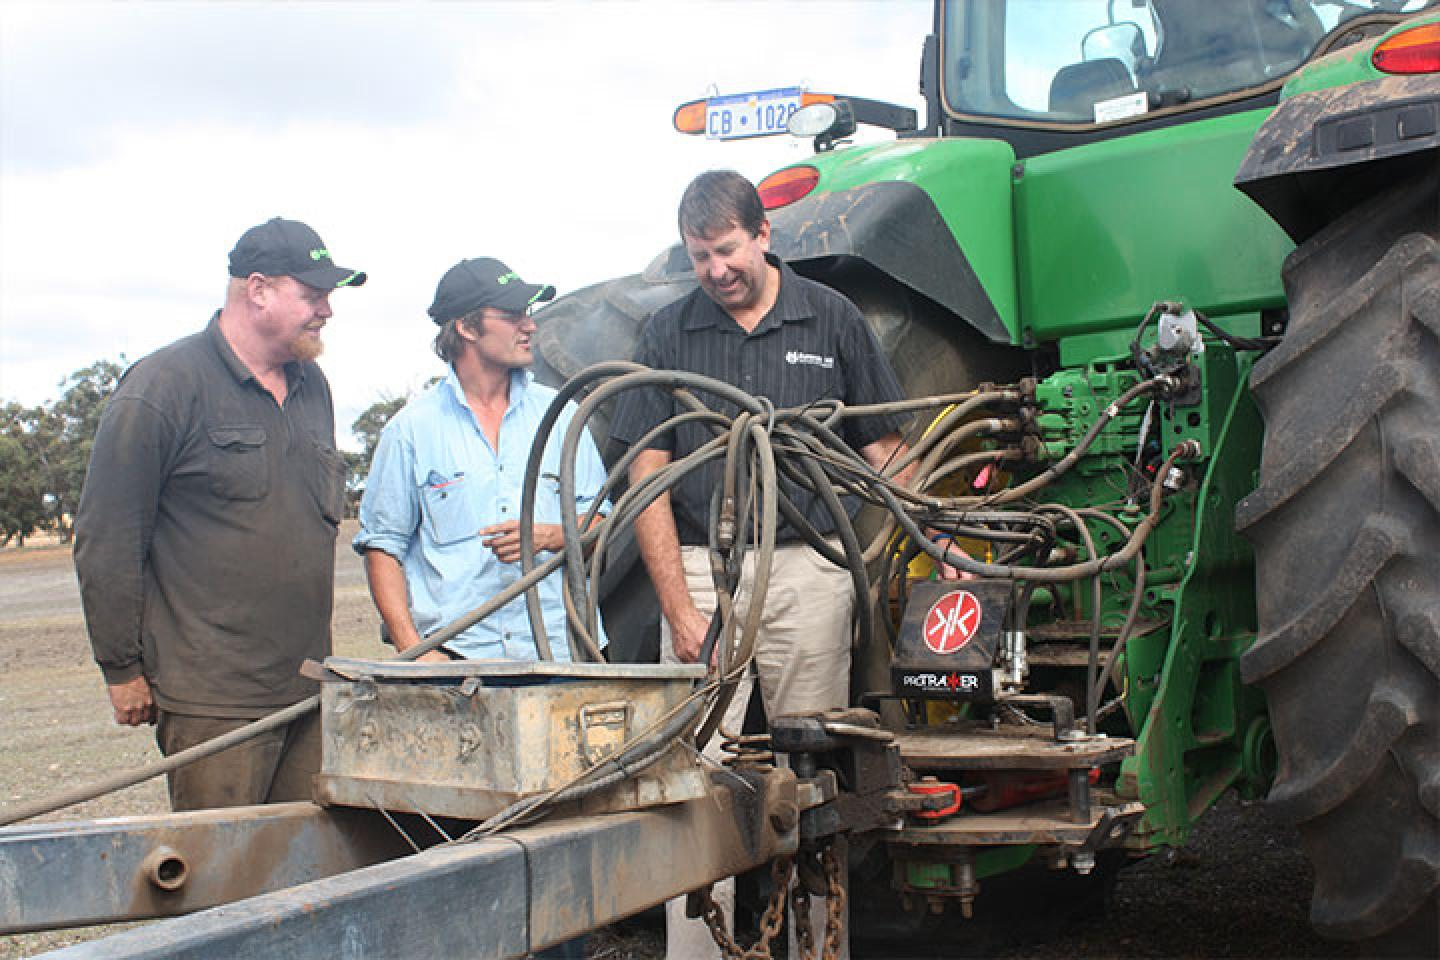 Cranbrook farmer Theo Cunningham (left) and Burando Hill salesman Michael Kowald discuss the hydraulic set-up on the ProTrakker guidance system, which is connected to the Cunningham's DBS precision seeder. It's a system growing in popularity to establish crops in the previous year's rows without disturbing stubble.